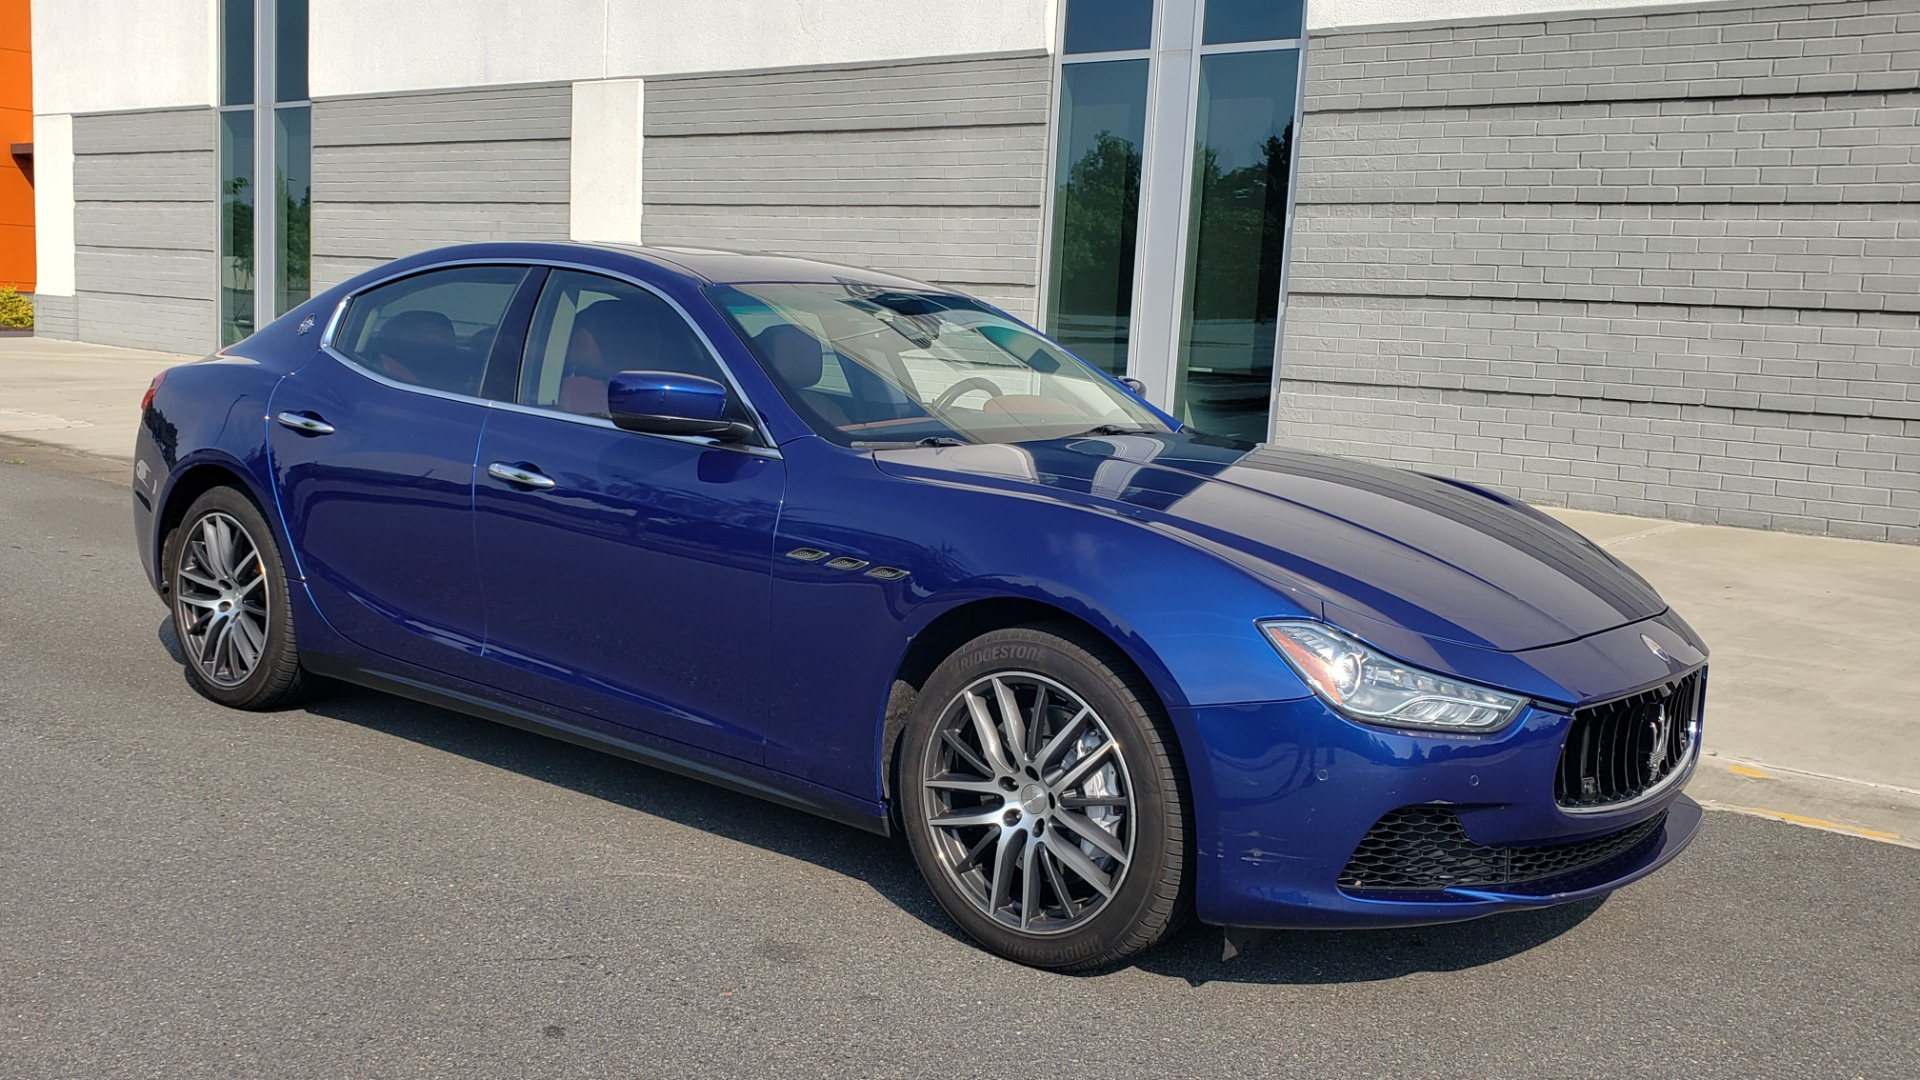 Used 2015 Maserati GHIBLI SEDAN / 3.0L V6 / 8-SPD AUTO / NAV / HTD STS / SUNROOF / REARVIEW for sale $24,495 at Formula Imports in Charlotte NC 28227 7